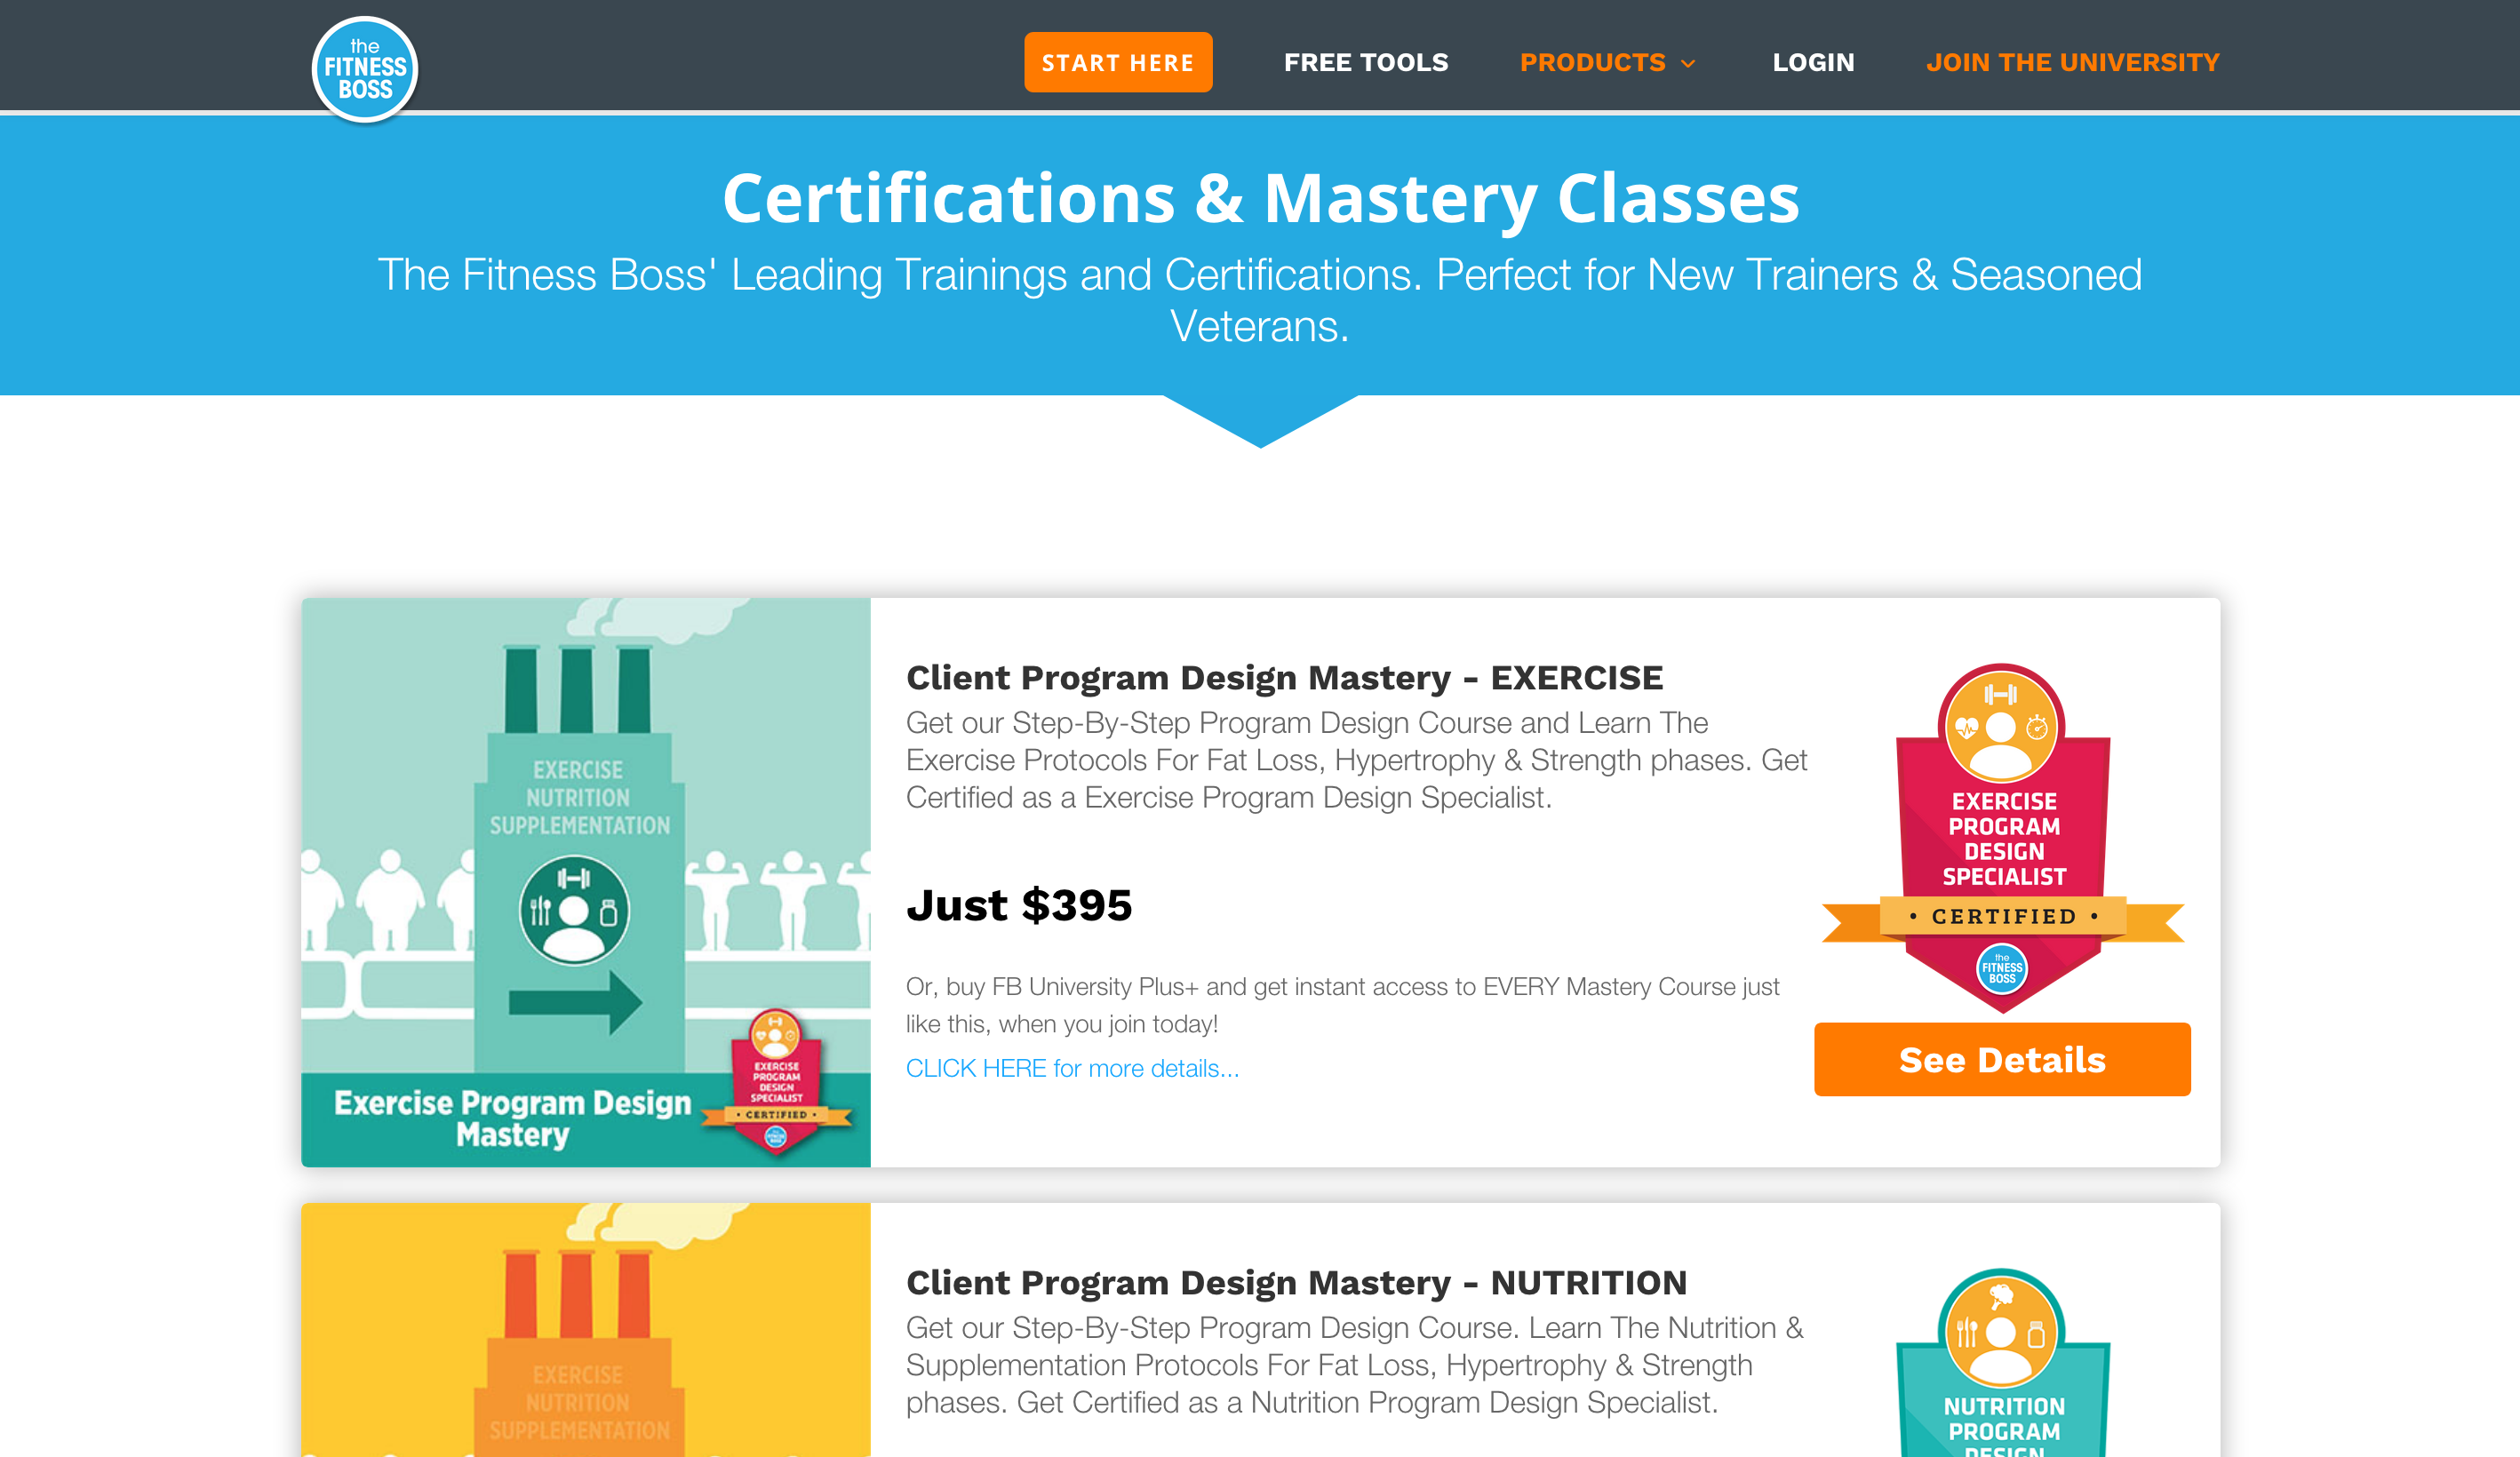 fitness wellness website selling online courses with LMS eLearning platform